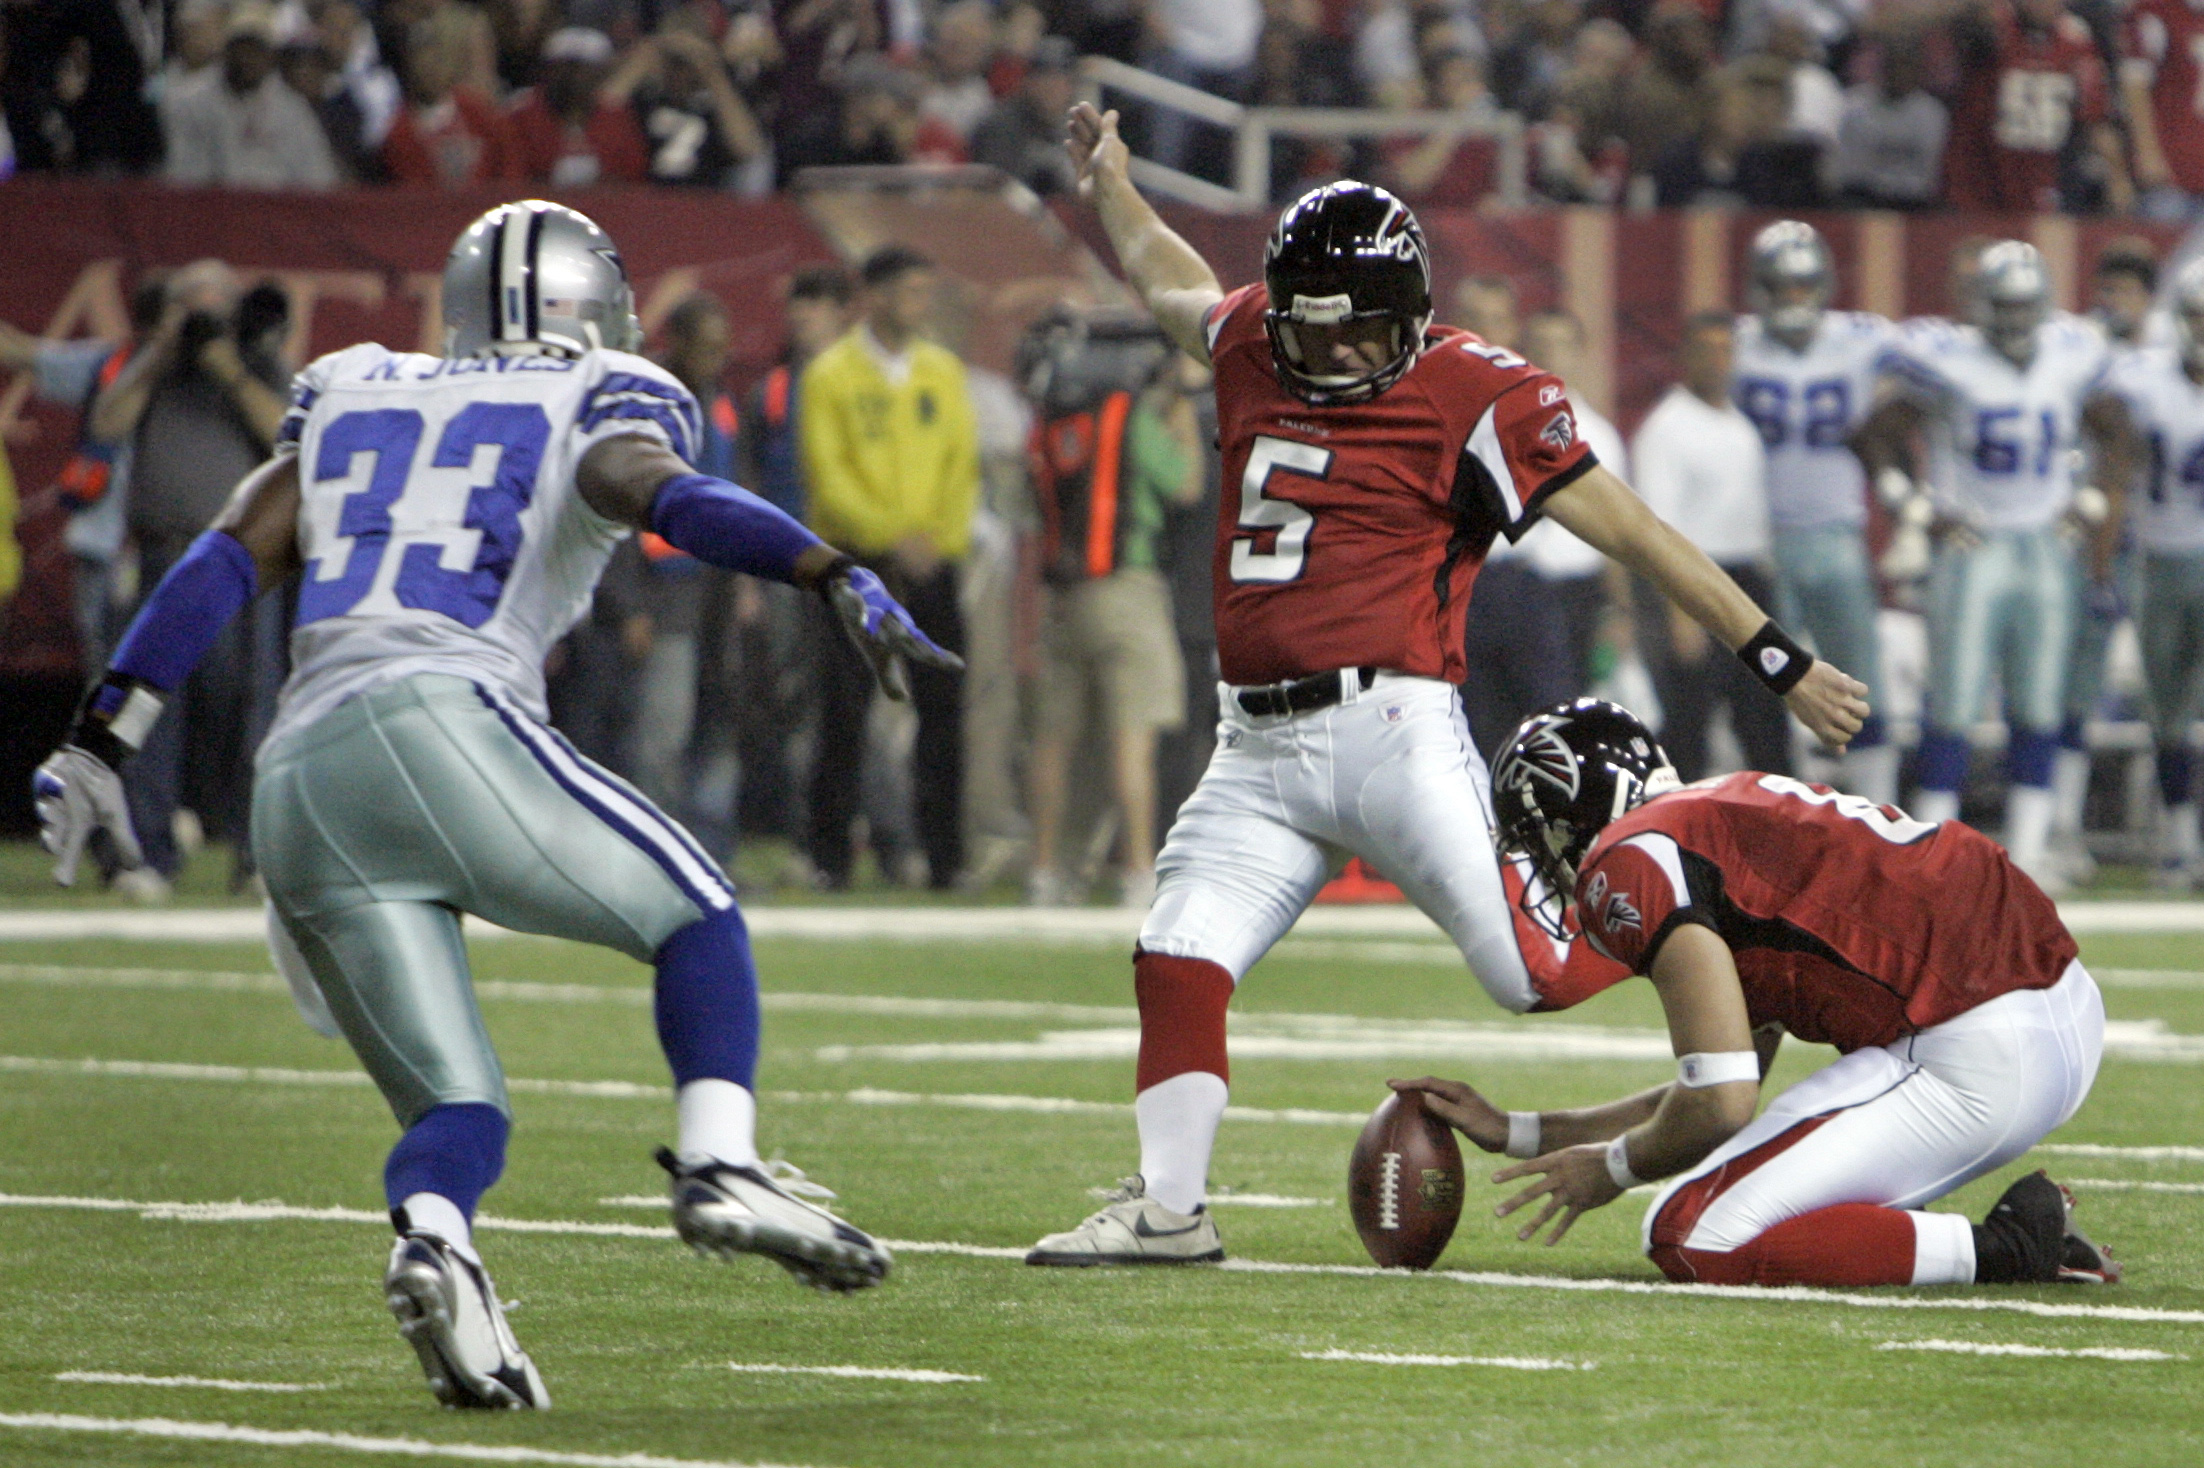 Atlanta Falcons' Matt Schaub holds the ball as Morten Andersen kicks an extra point against the Dallas Cowboys during an NFL game in Atlanta on Dec. 16, 2006